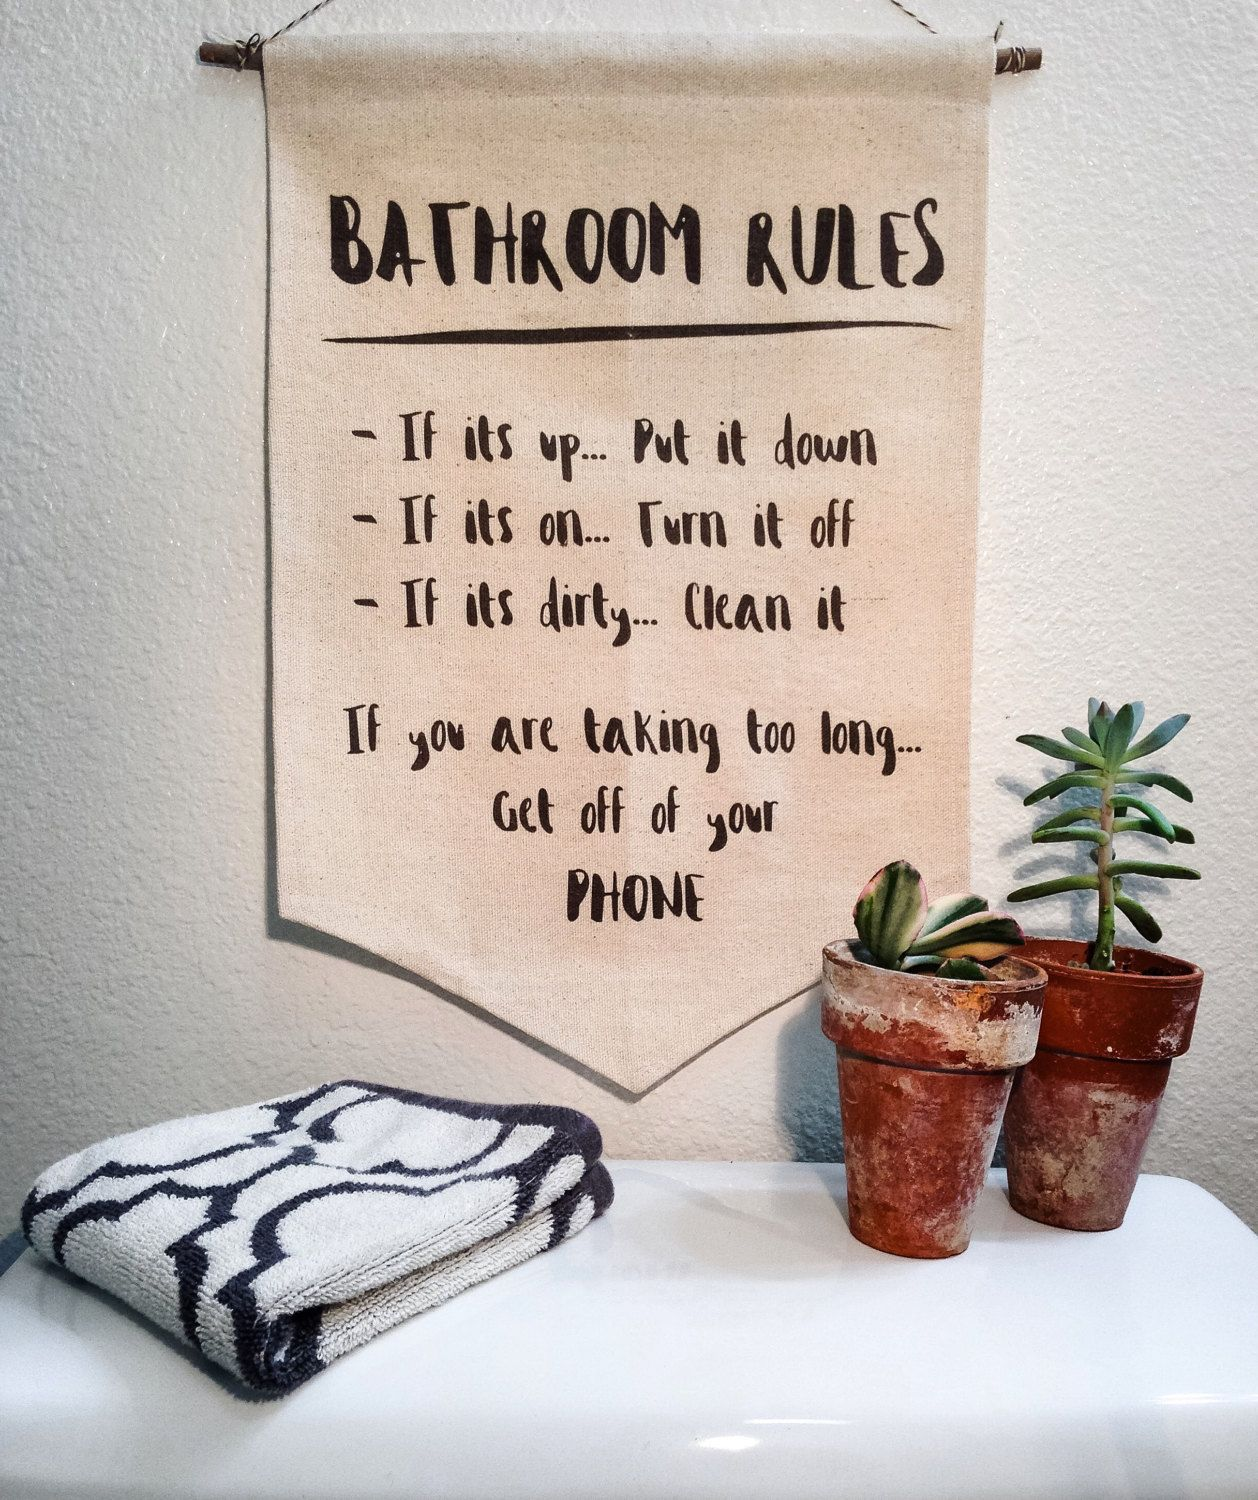 Bathroom wall decor quotes - Handmade Bathroom Rules Canvas Wall Banner Bathroom Wall Decor Bathroom Quote Wall